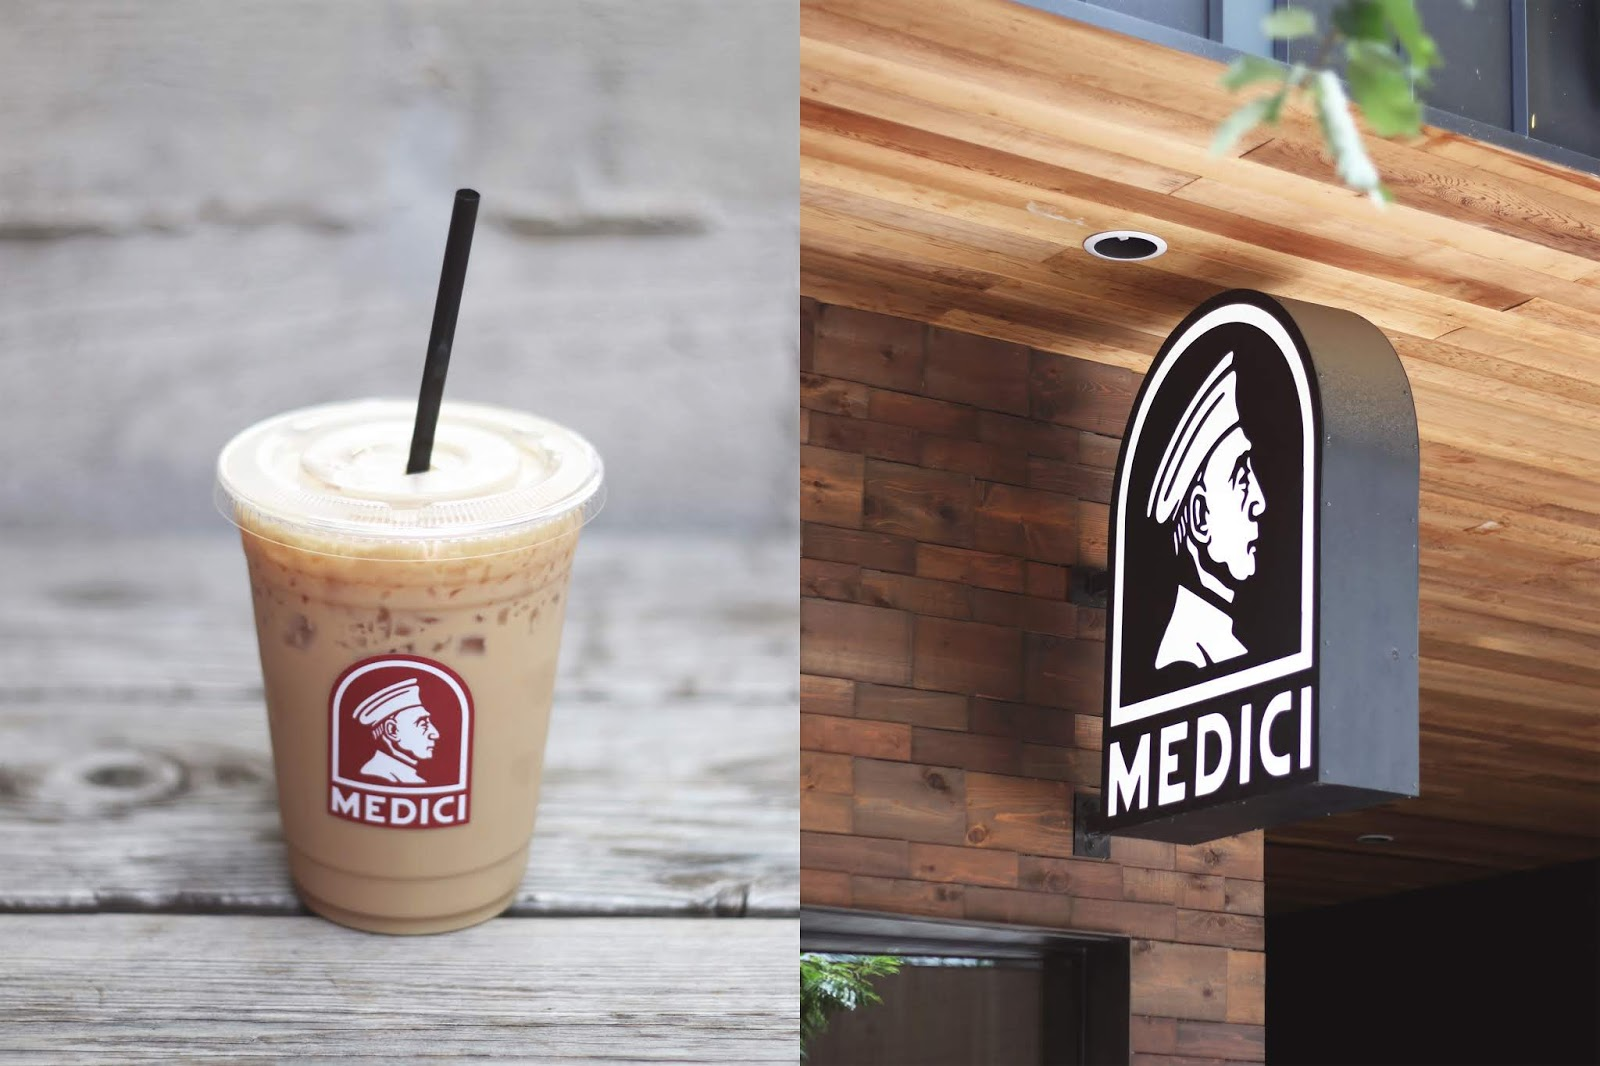 Caffe Medici Austin, Iced Coffee, Cozy Coffee Shop, Coffee Shops Vibe